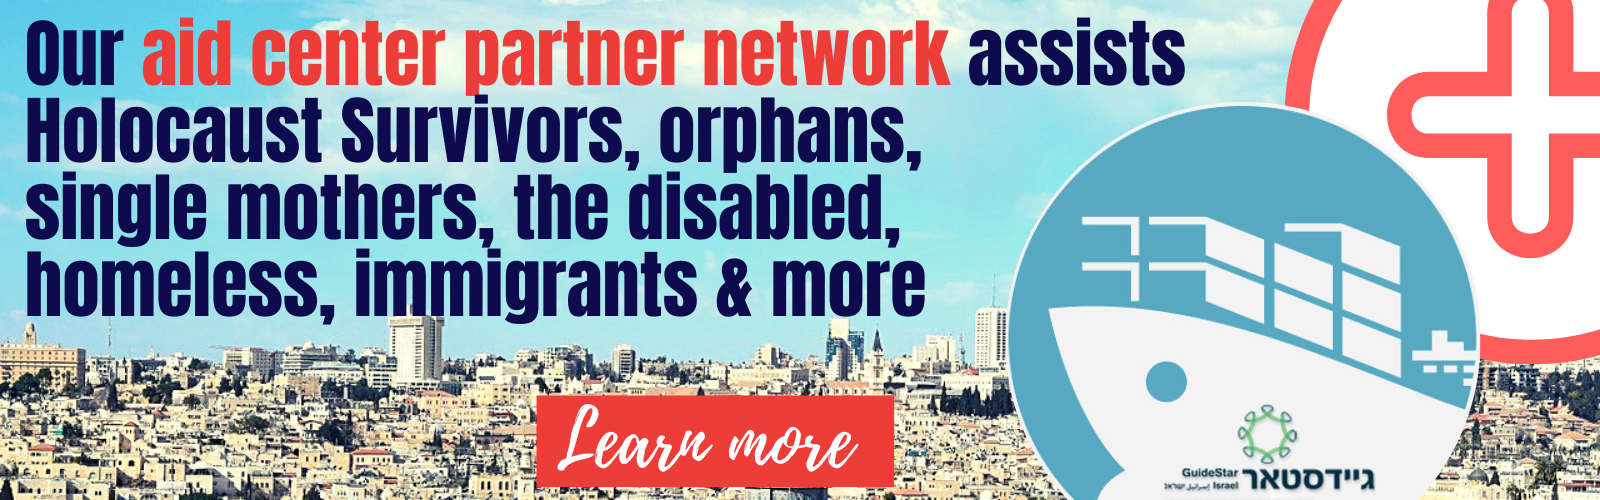 Israel_Relief_Aid_Center_Partners